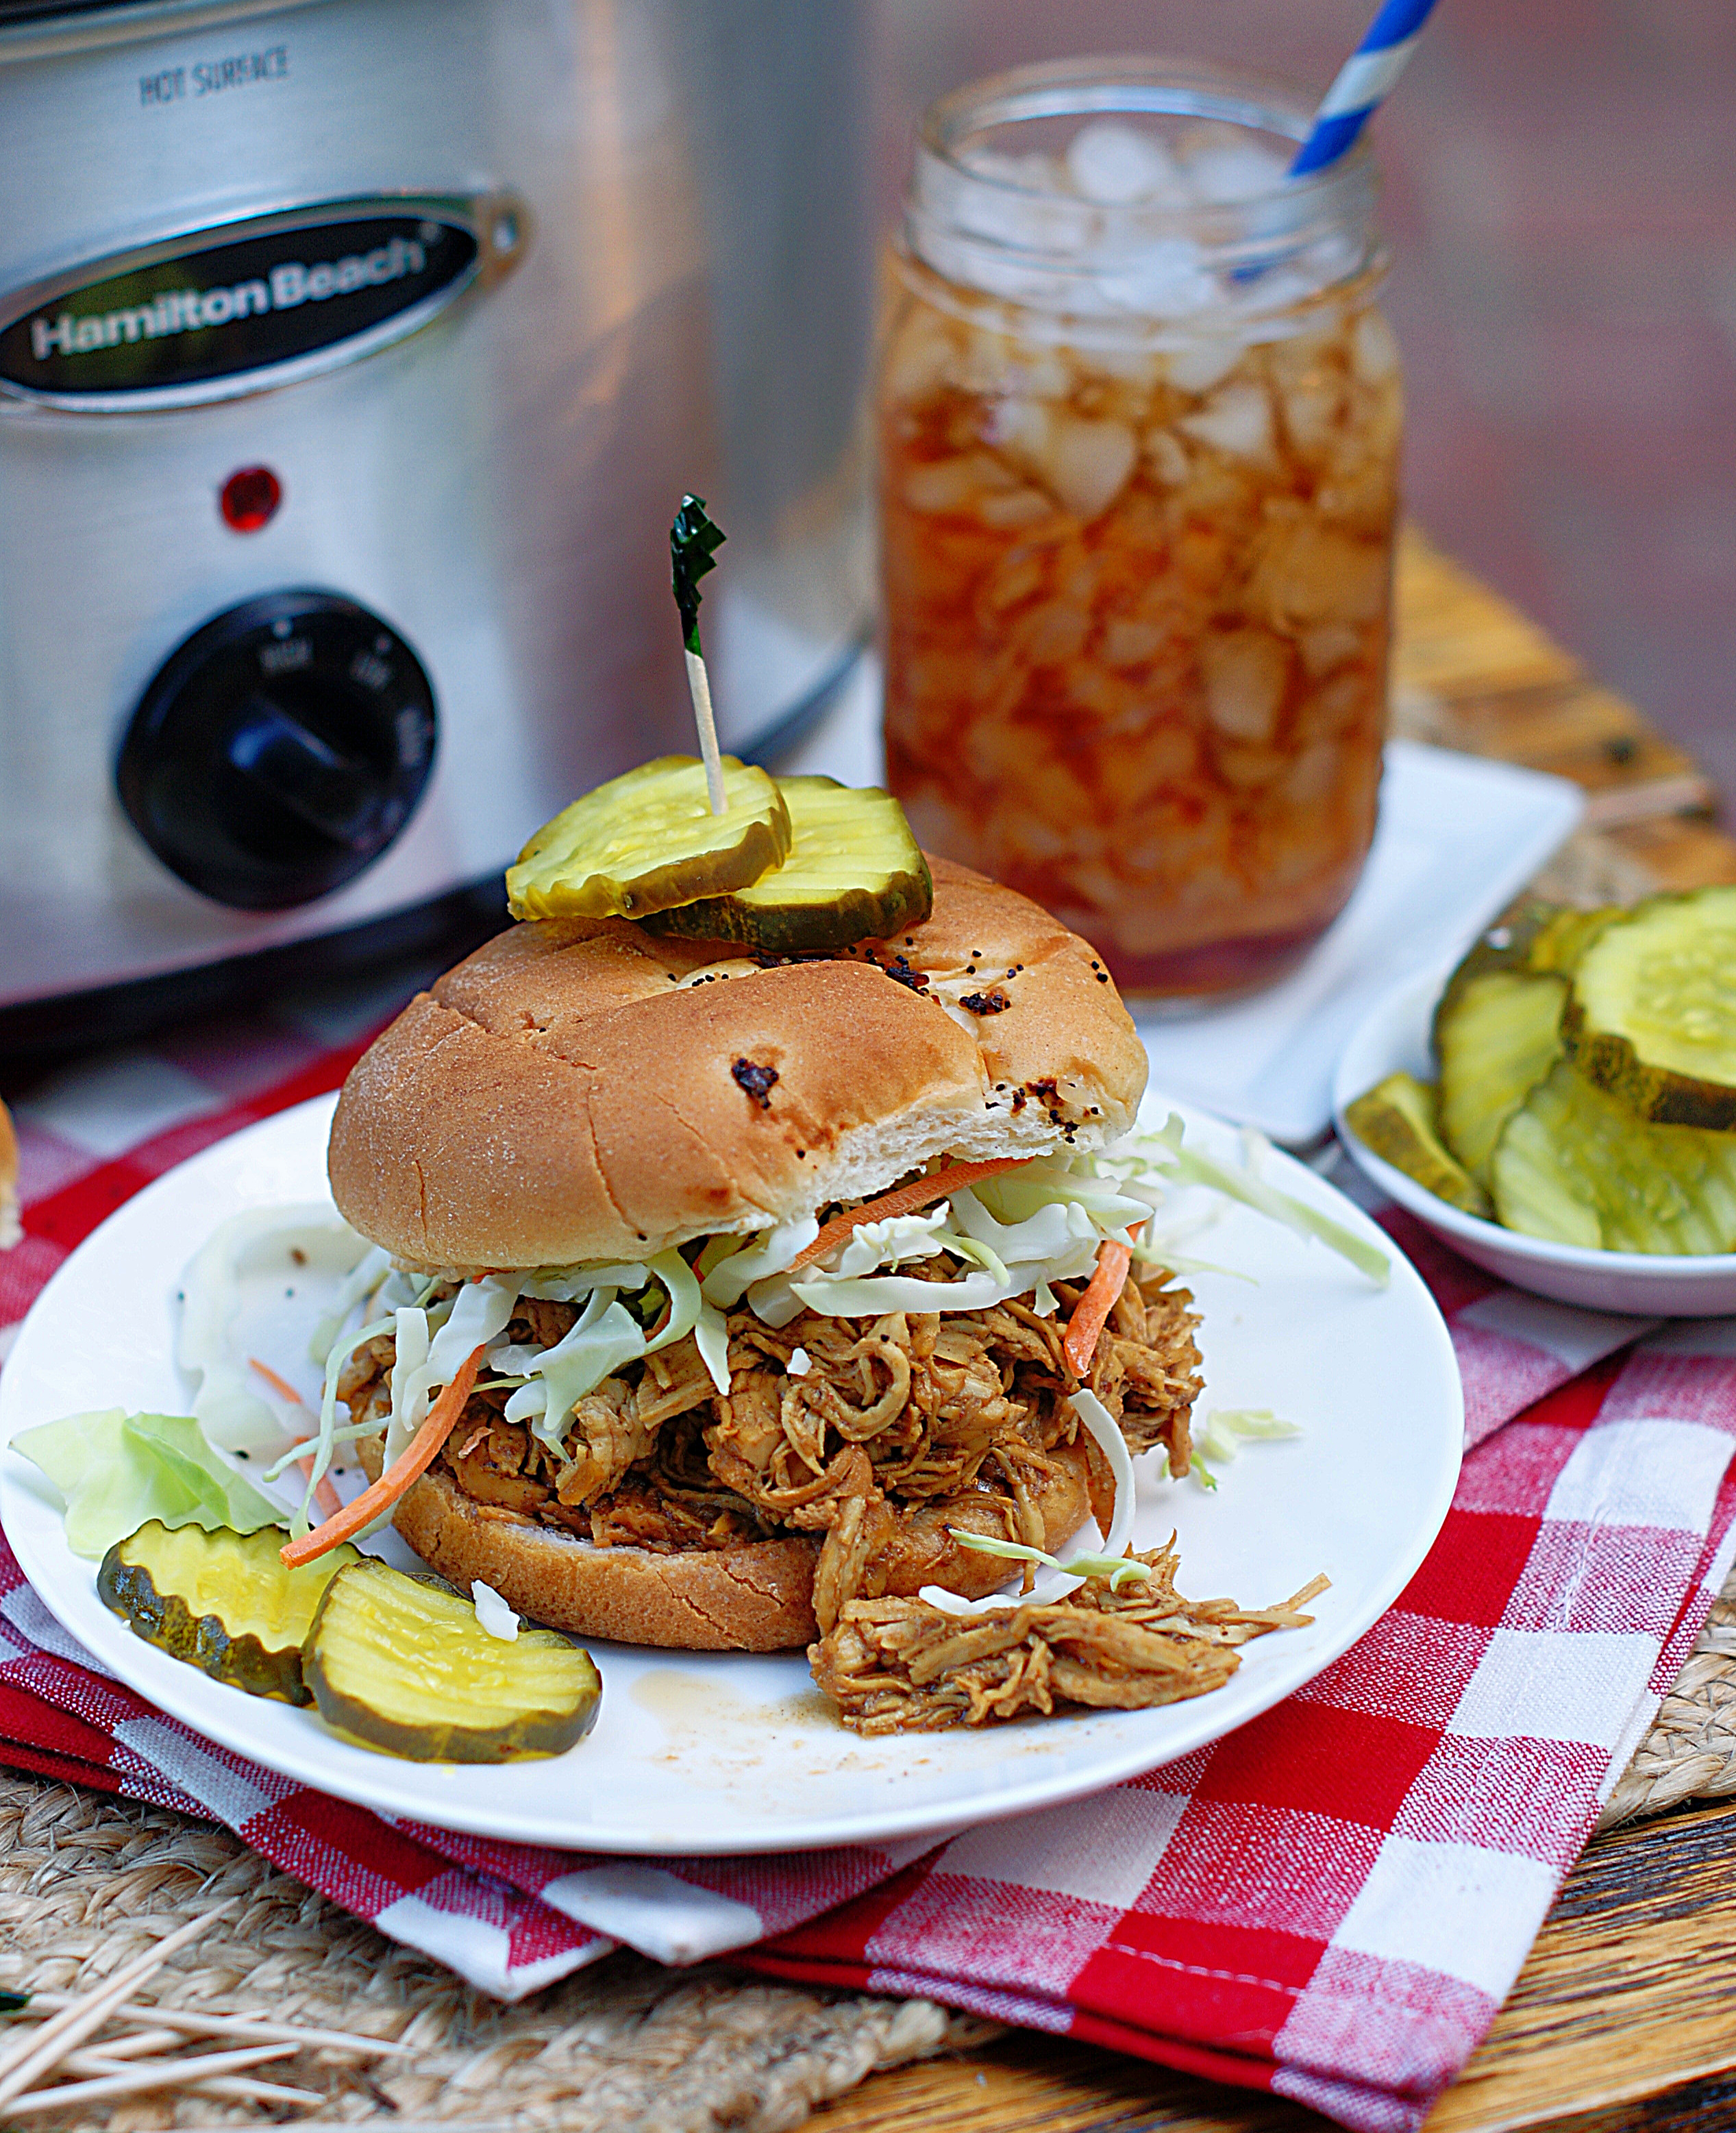 A Shredded Chicken BBQ Sandwich with pickles and a crock pot in the background.